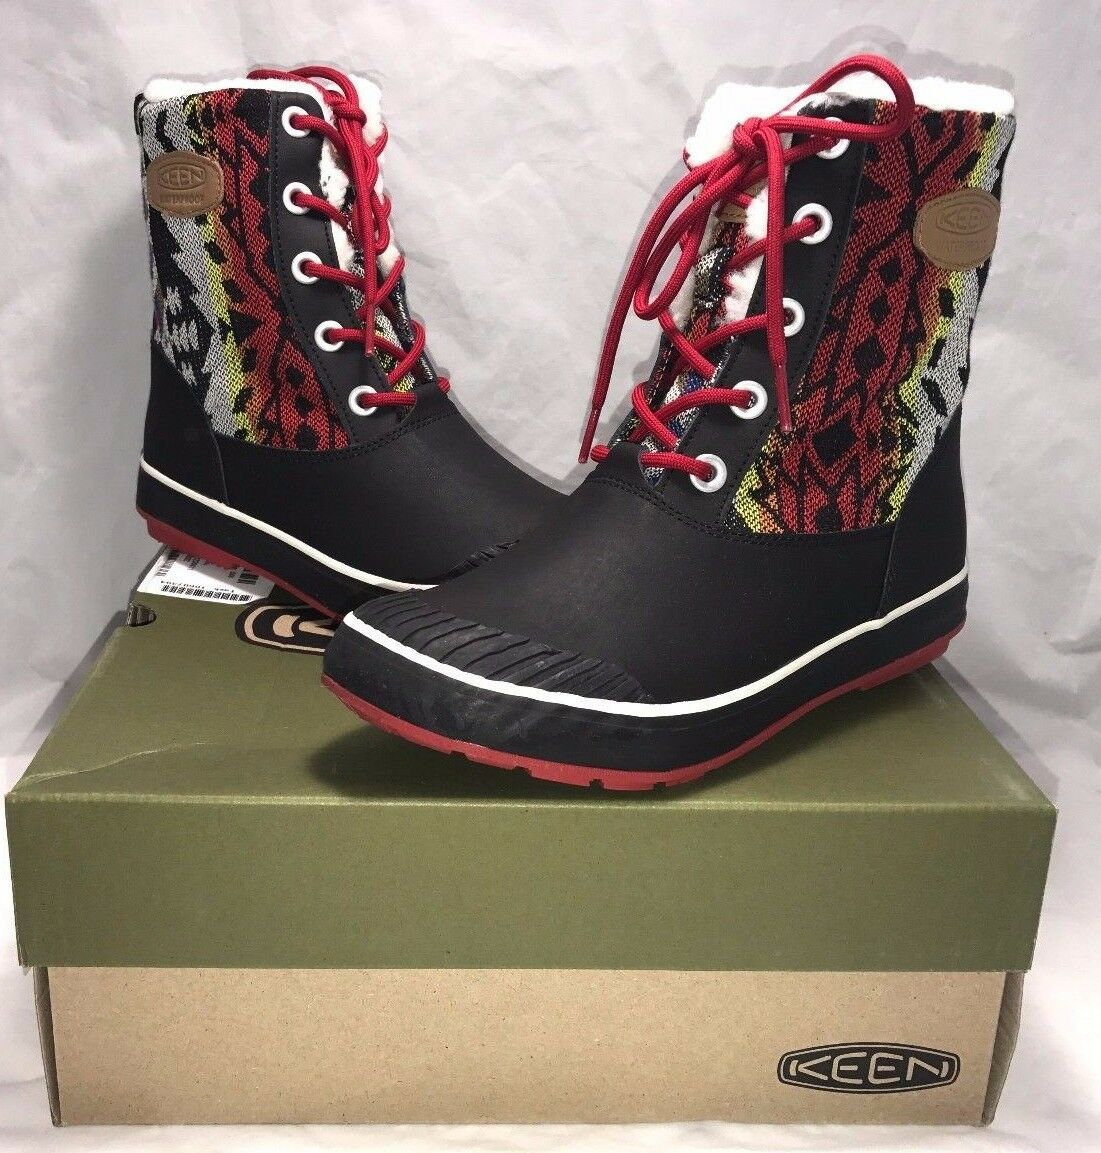 Keen Womens Size 5 Elsa Boot Chili Pepper Waterproof Lace Up Winter Boots New